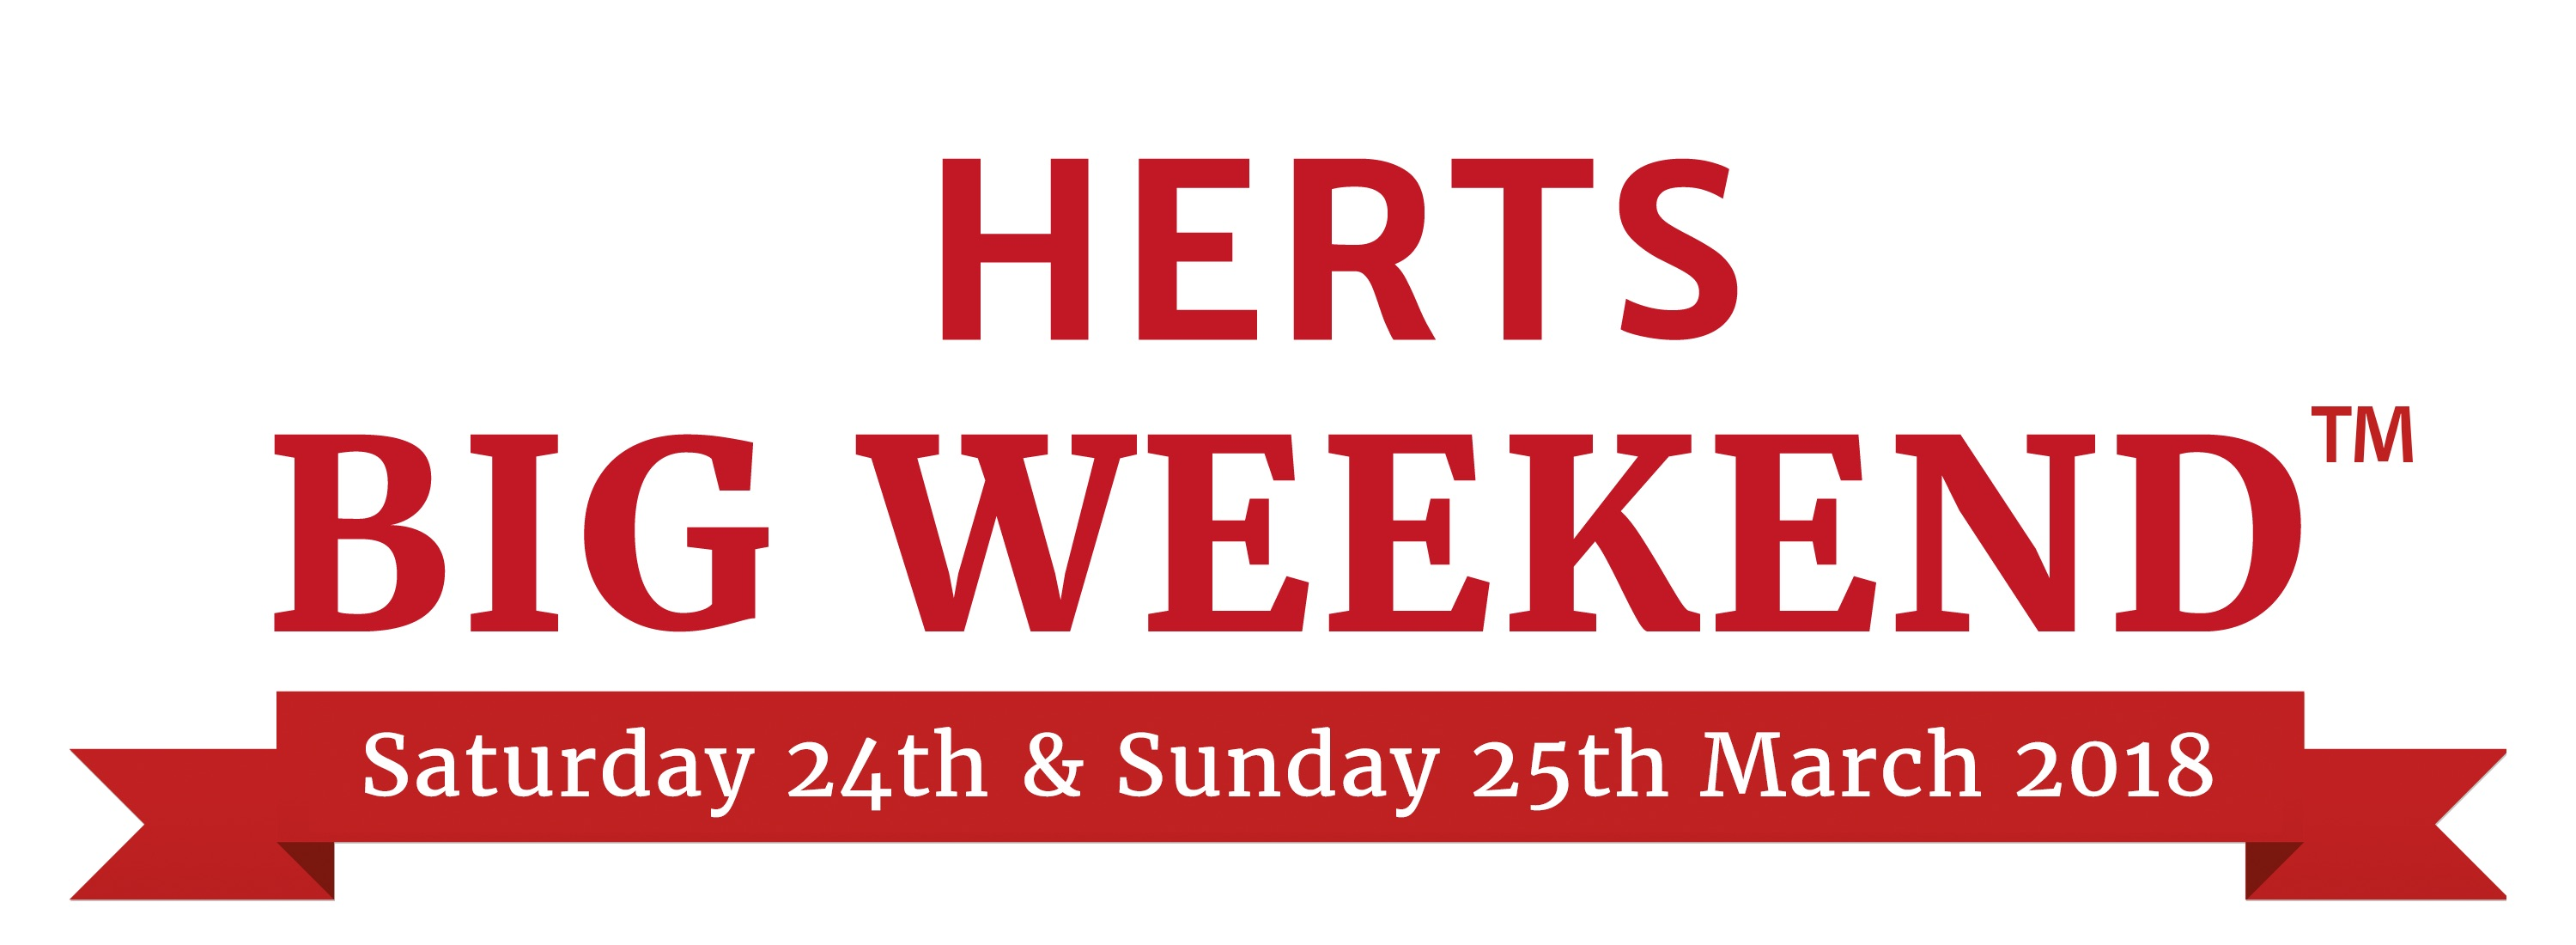 Herts Big Weekend Logo